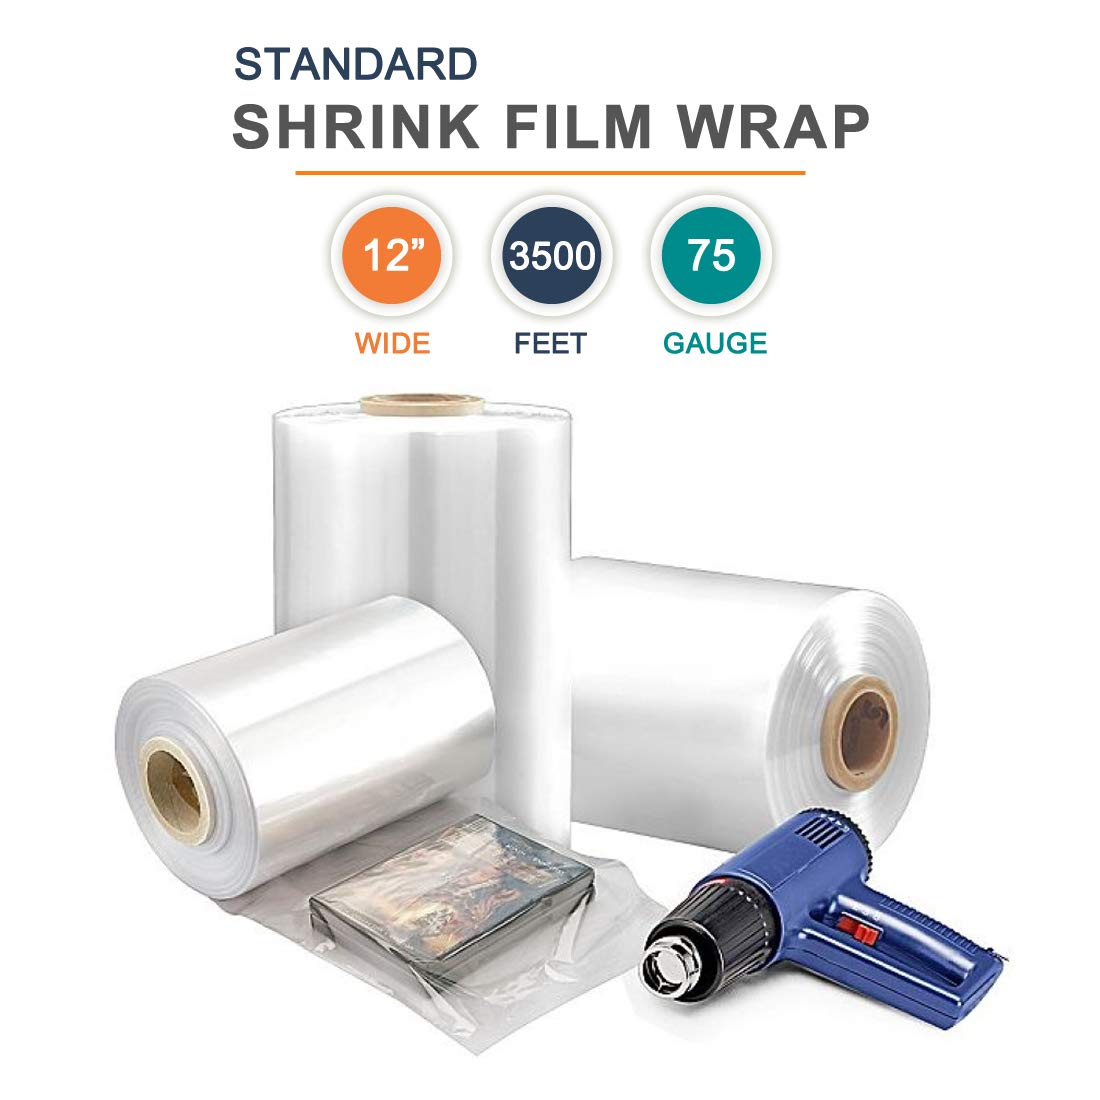 12 inch Polyolefin Centerfold Shrink Film Standard, Excellent Clarity High Gloss, 3500 ft x 75 Gauge Thick, 1 Roll